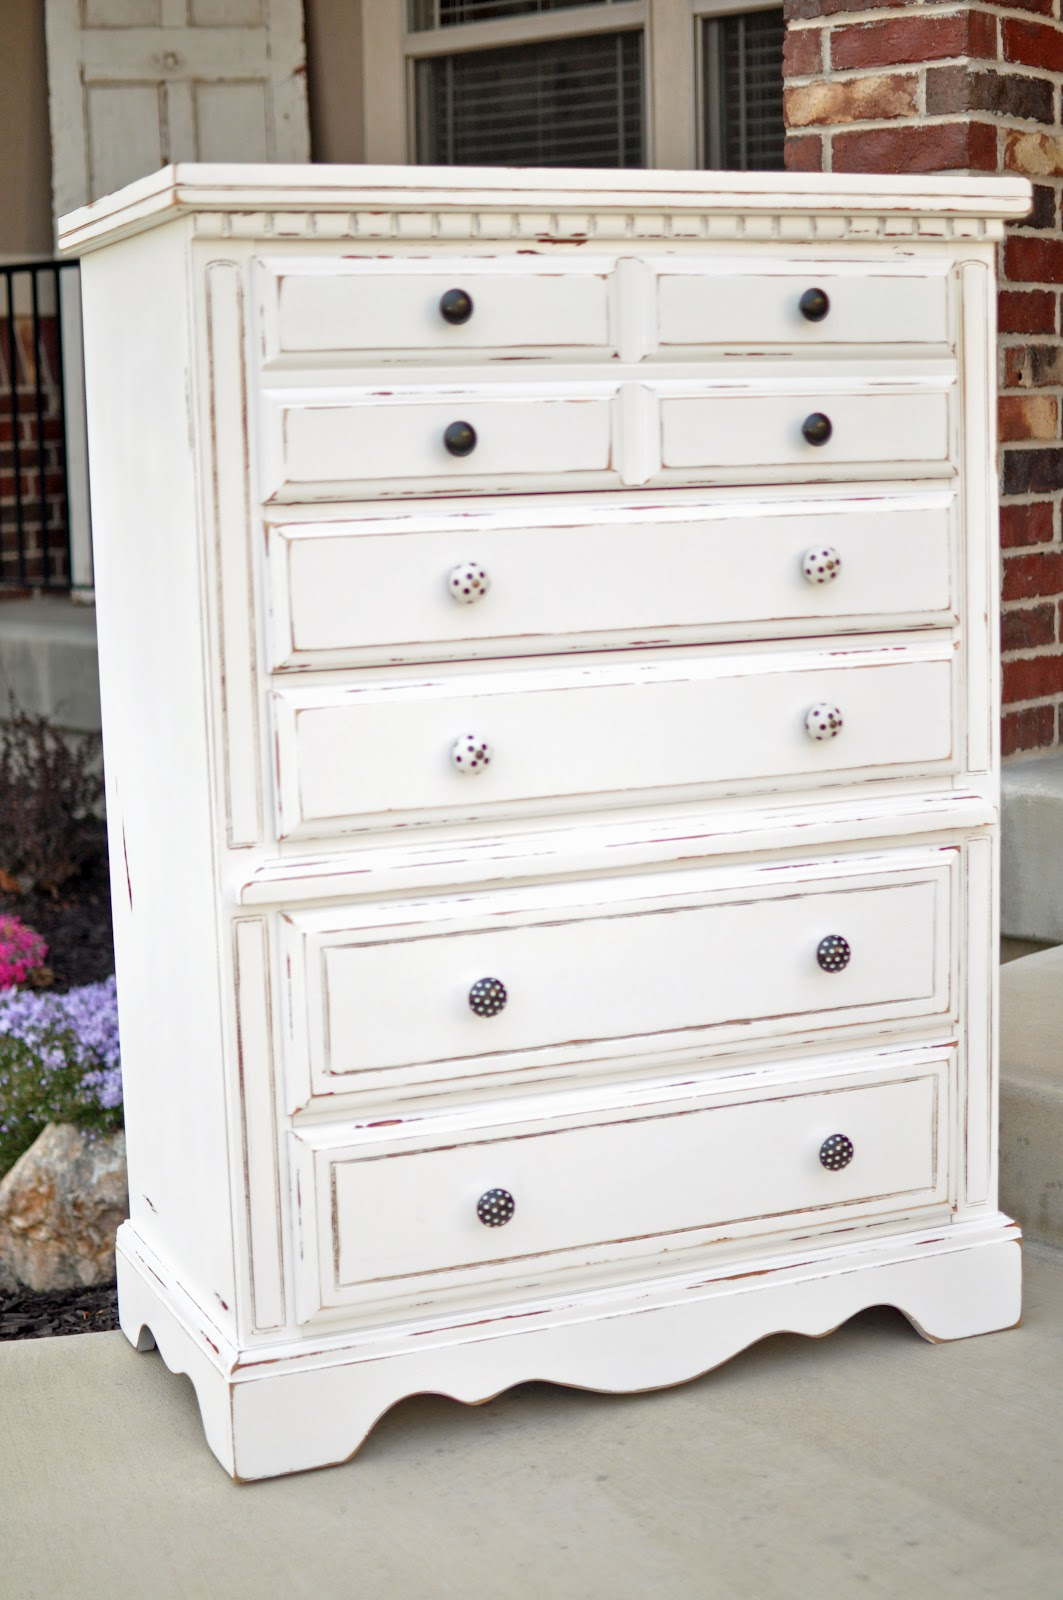 {Cleverly Crafty}: {Darling} WhITe ChEst Of DrAwERs